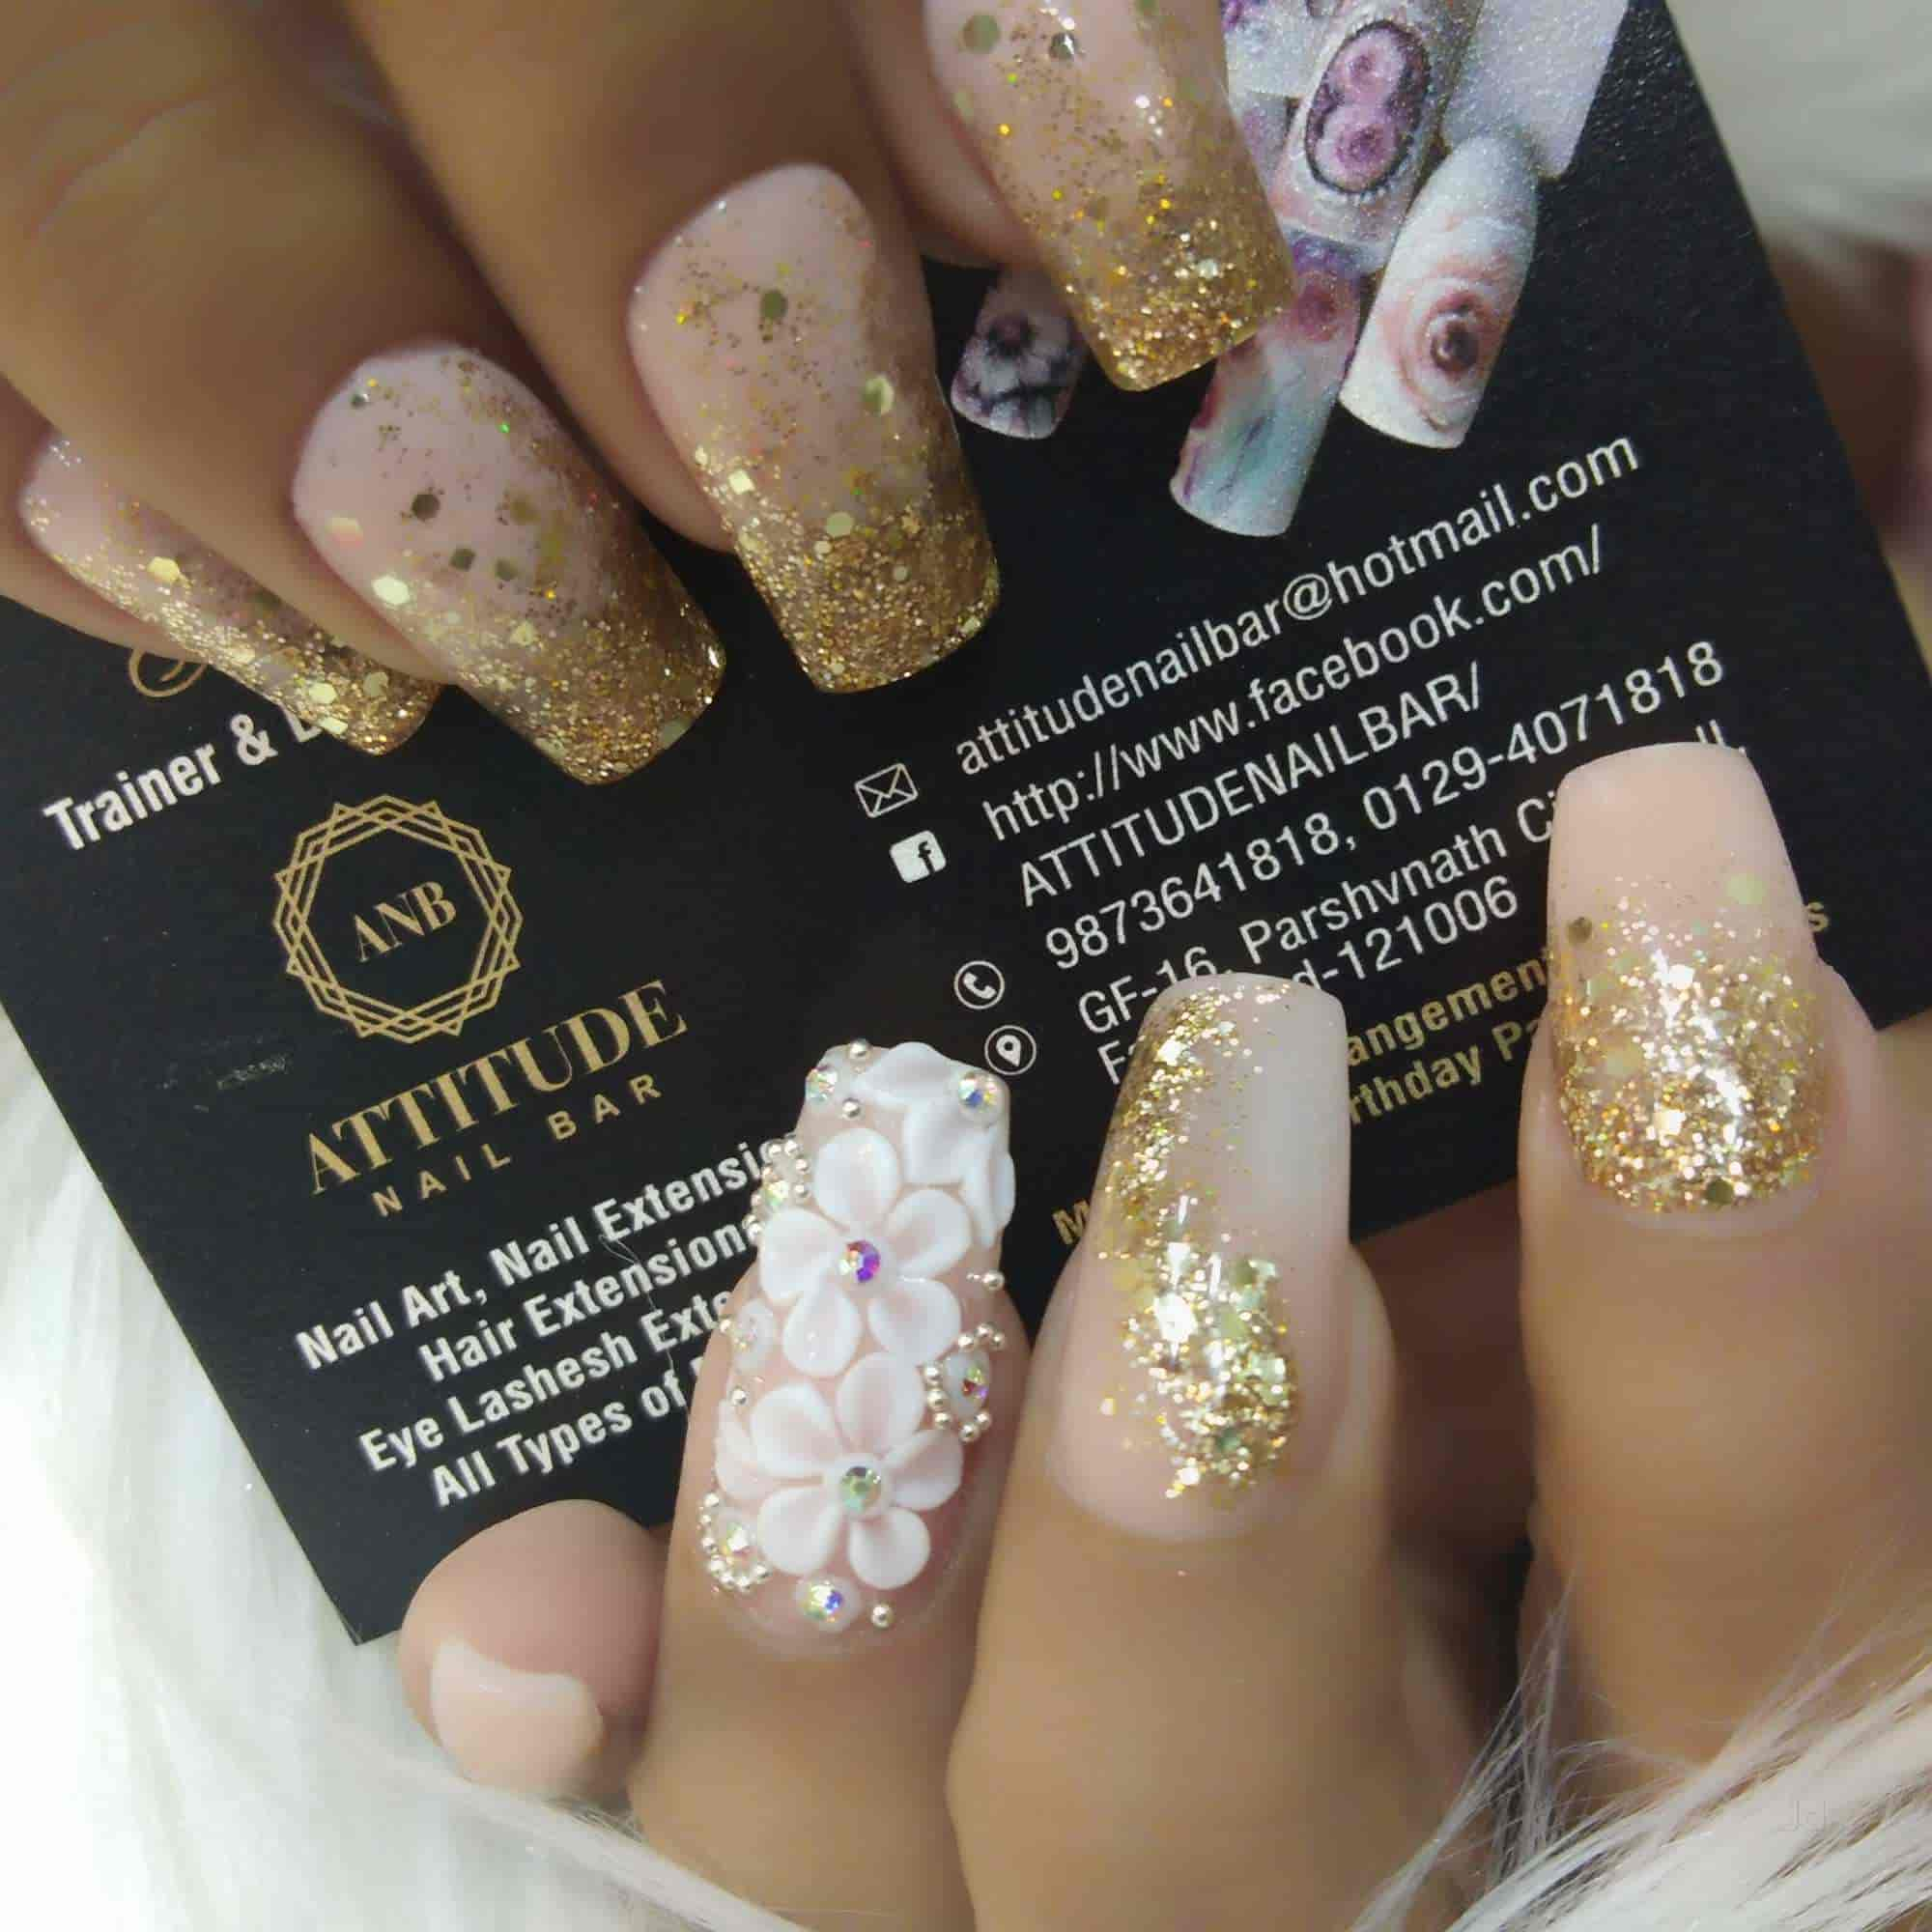 Attitude Nail Bar, Sector 12 - Beauty Parlours For Nail Art in Delhi - Justdial